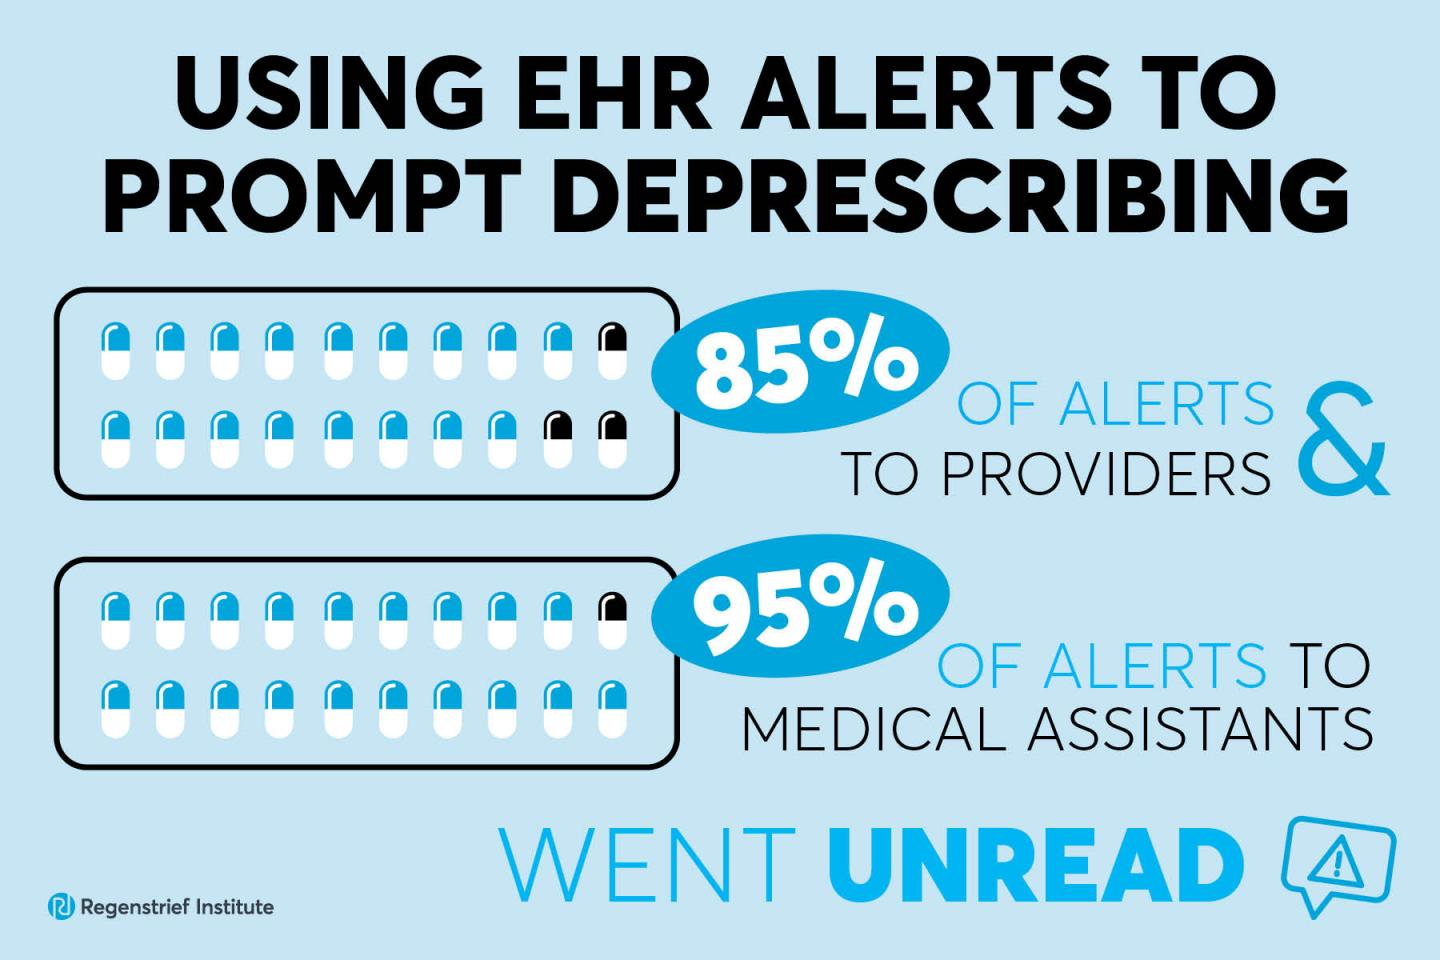 EHR alerts go unread and do not lead to deprescribing of medicines linked to dementia